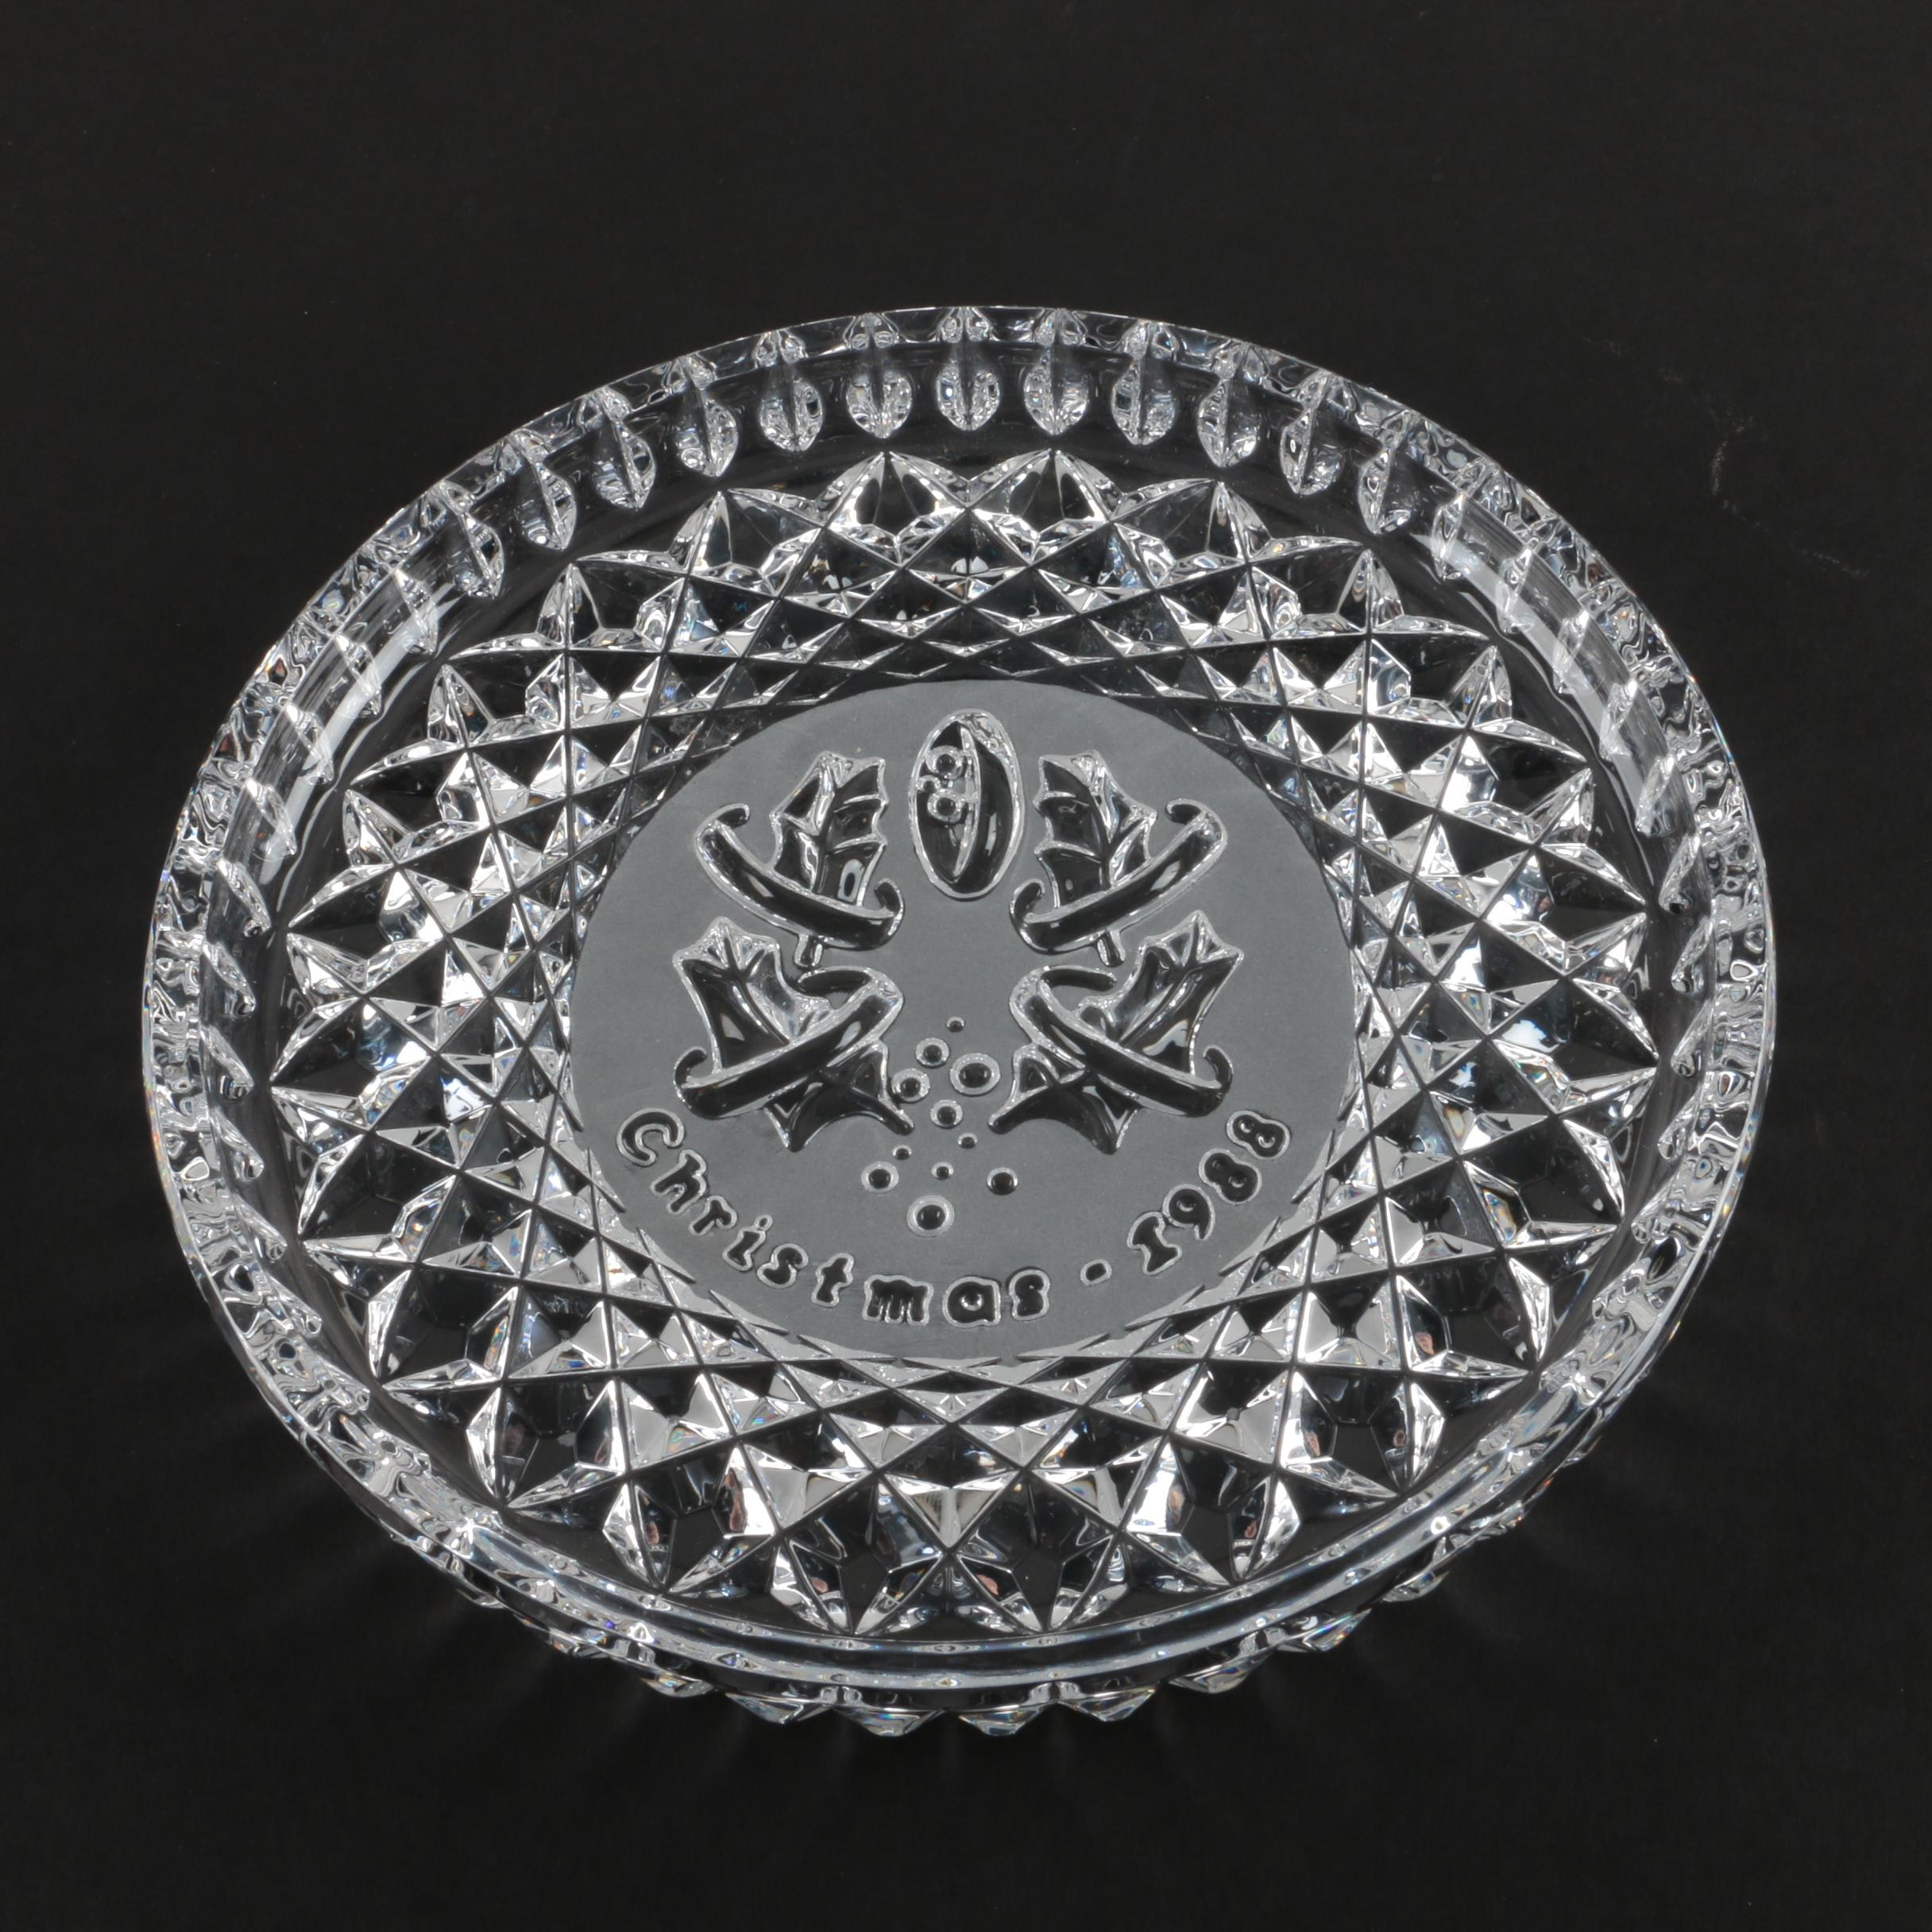 Waterford Crystal Christmas 1988 Commemorative Plate